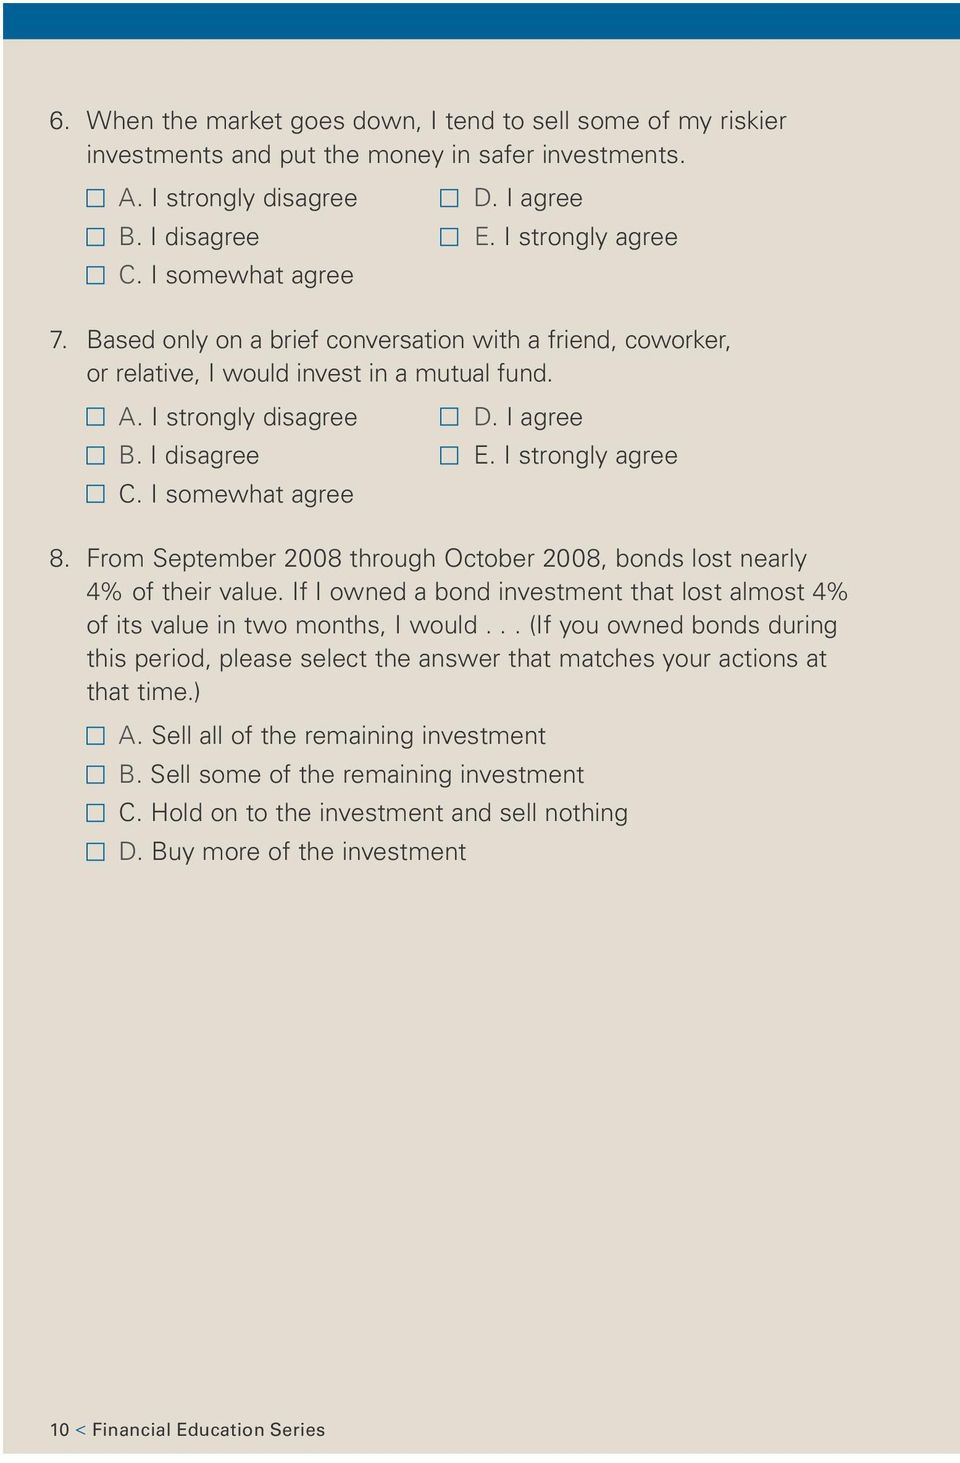 I strongly agree 8. From September 2008 through October 2008, bonds lost nearly 4% of their value. If I owned a bond investment that lost almost 4% of its value in two months, I would.